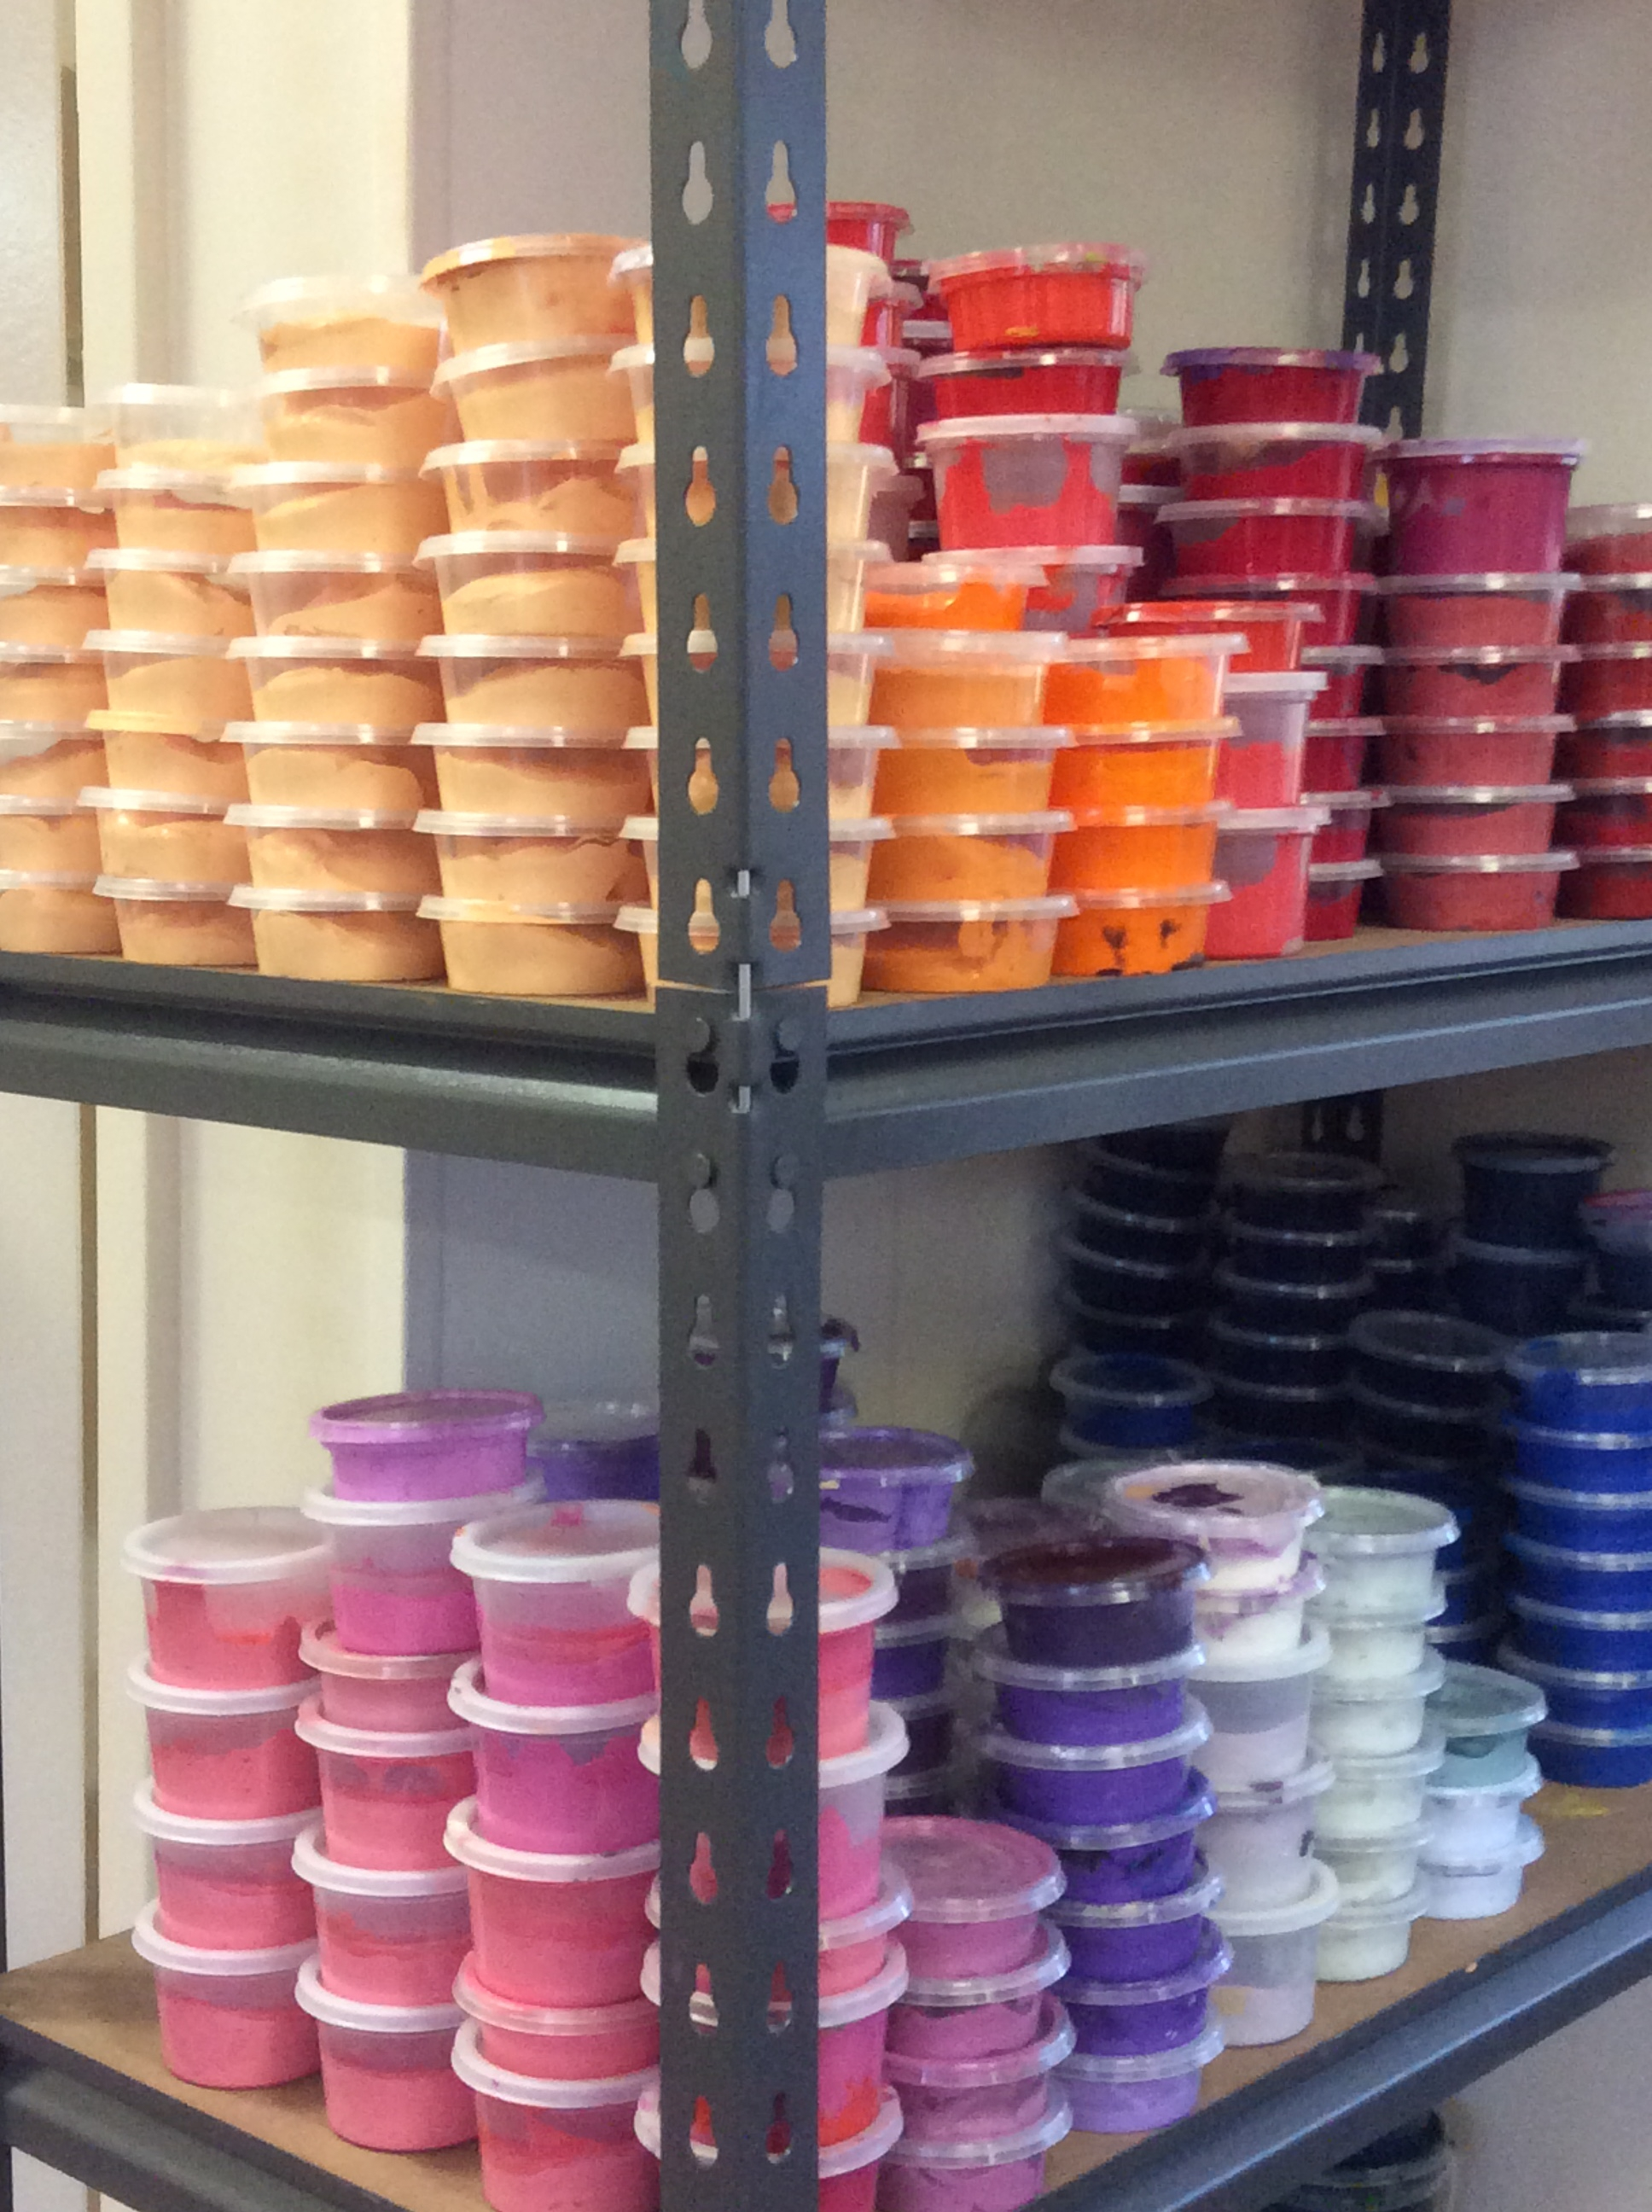 Acrylic paint pots in the Yarliyil Art Centre studio © AGWA 2015